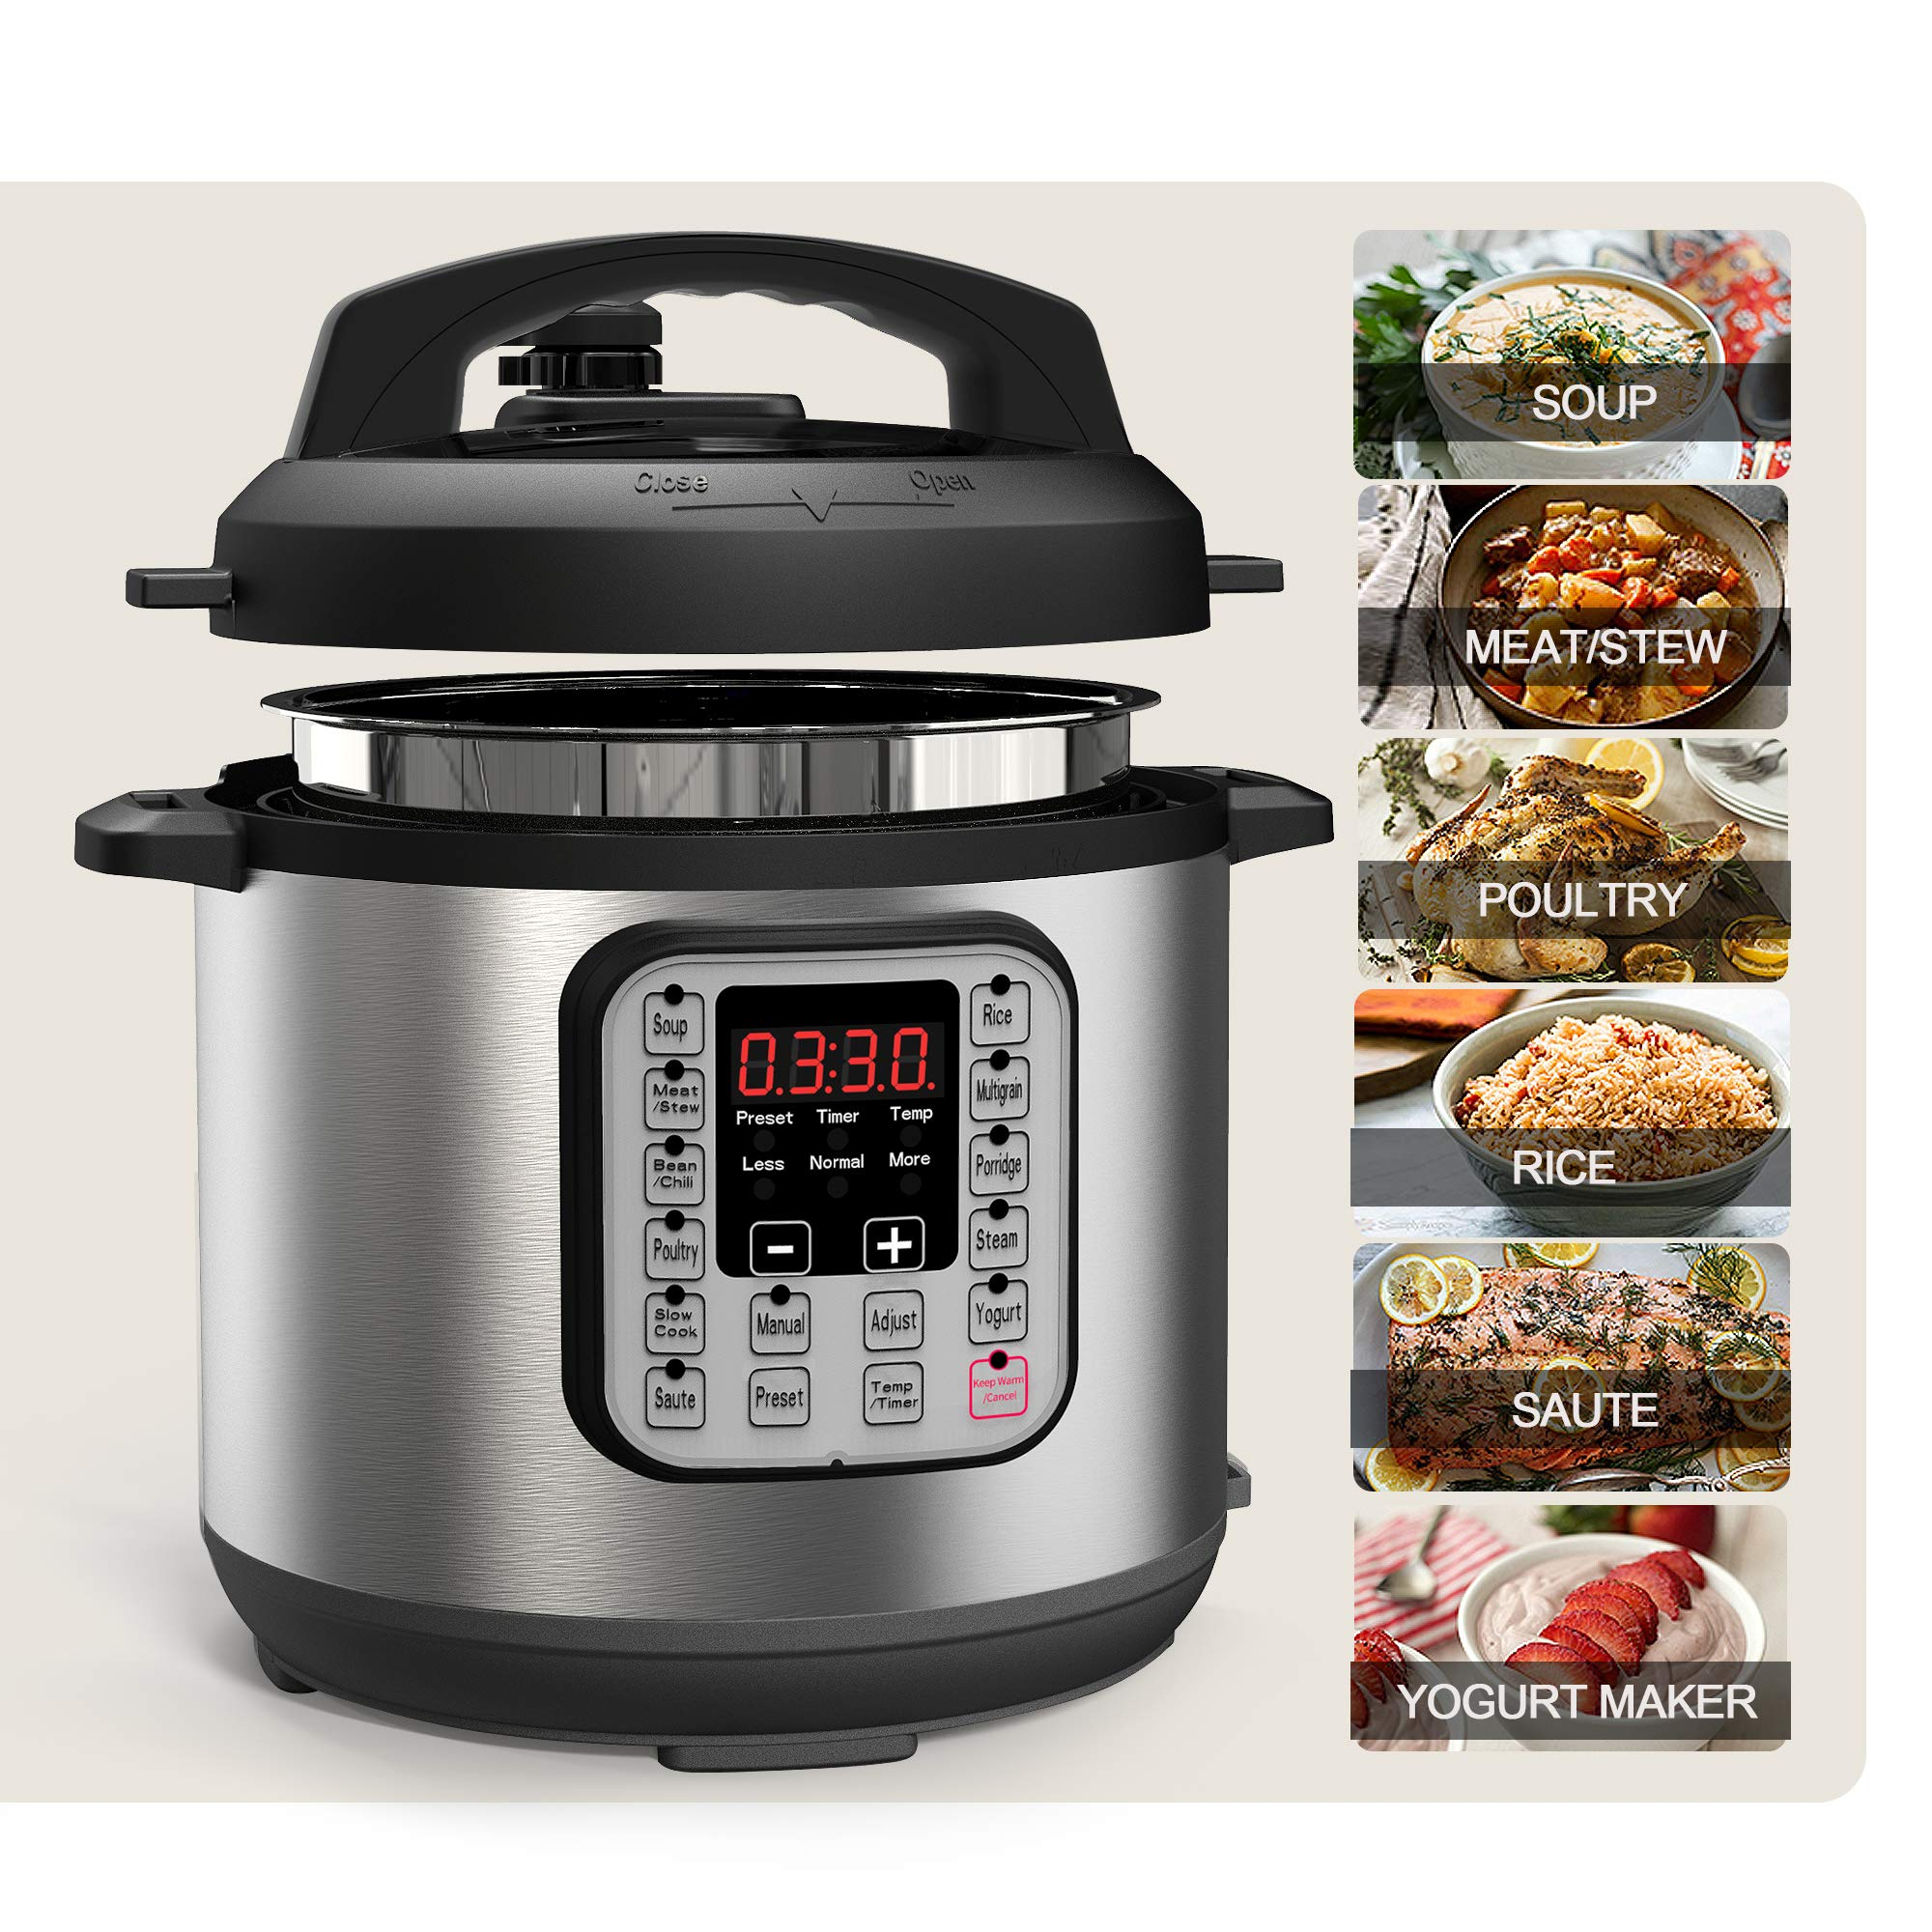 Acare 6 Qt 7-in-1 Programmable Pressure Cooker,6 Quart/6L Stainless Steel Multi-Use Cooker,1000W,Slow Cooker,Rice Cooker,Stew,Steamer,Sauté,Yogurt Maker and Warmer